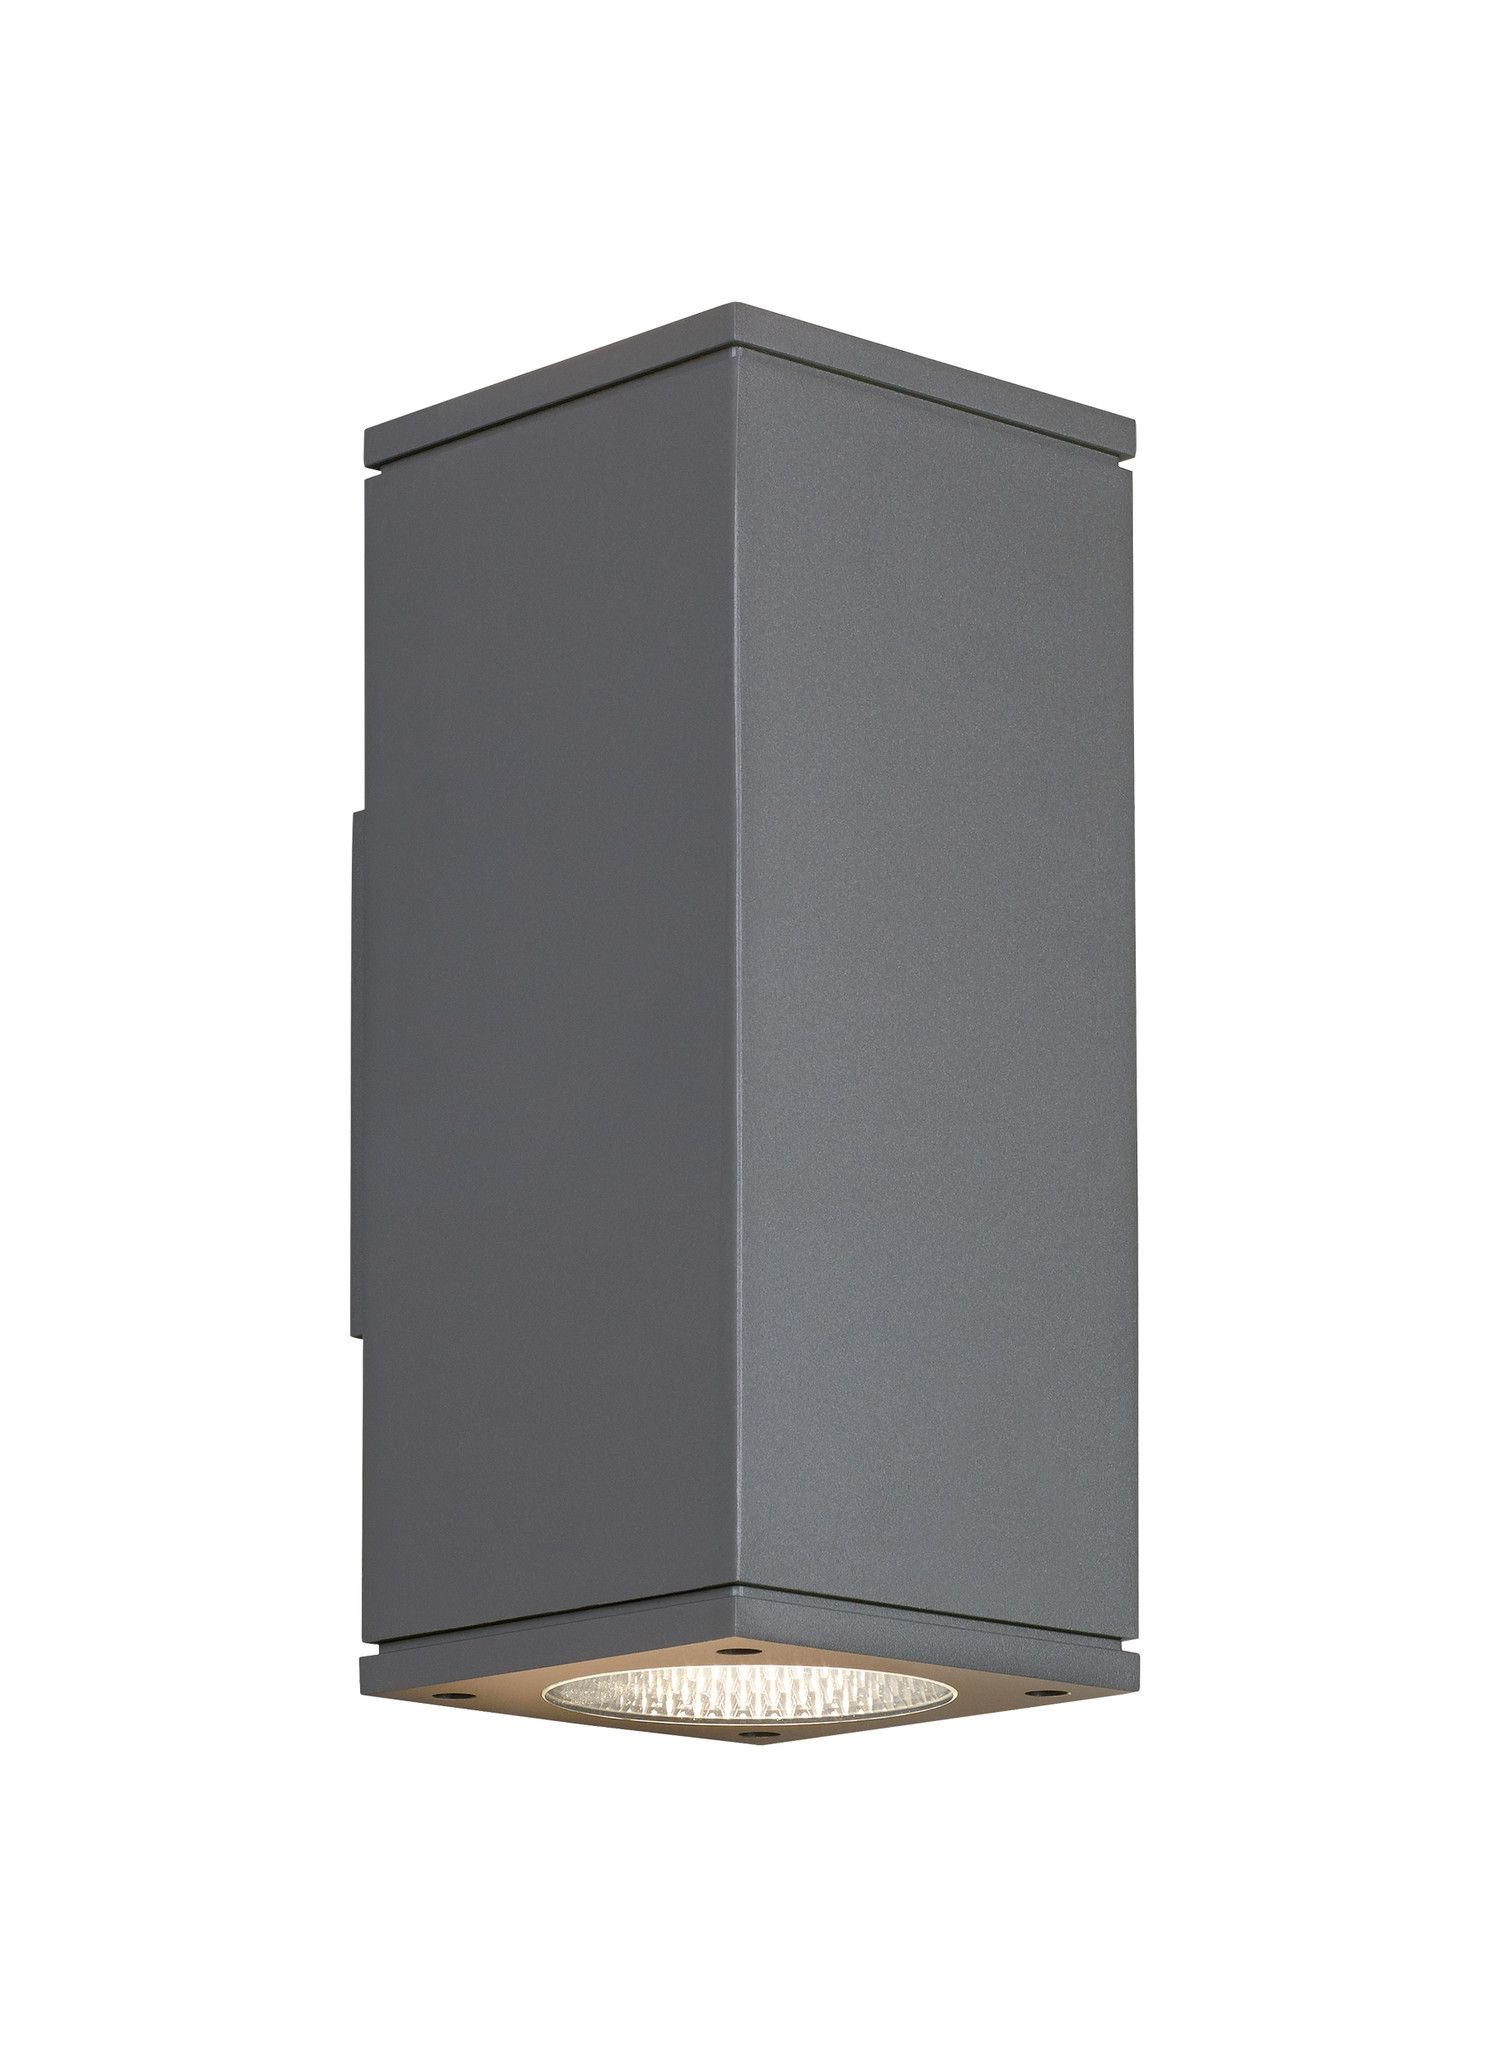 Voto large outdoor wall light outdoor gardens and gardens